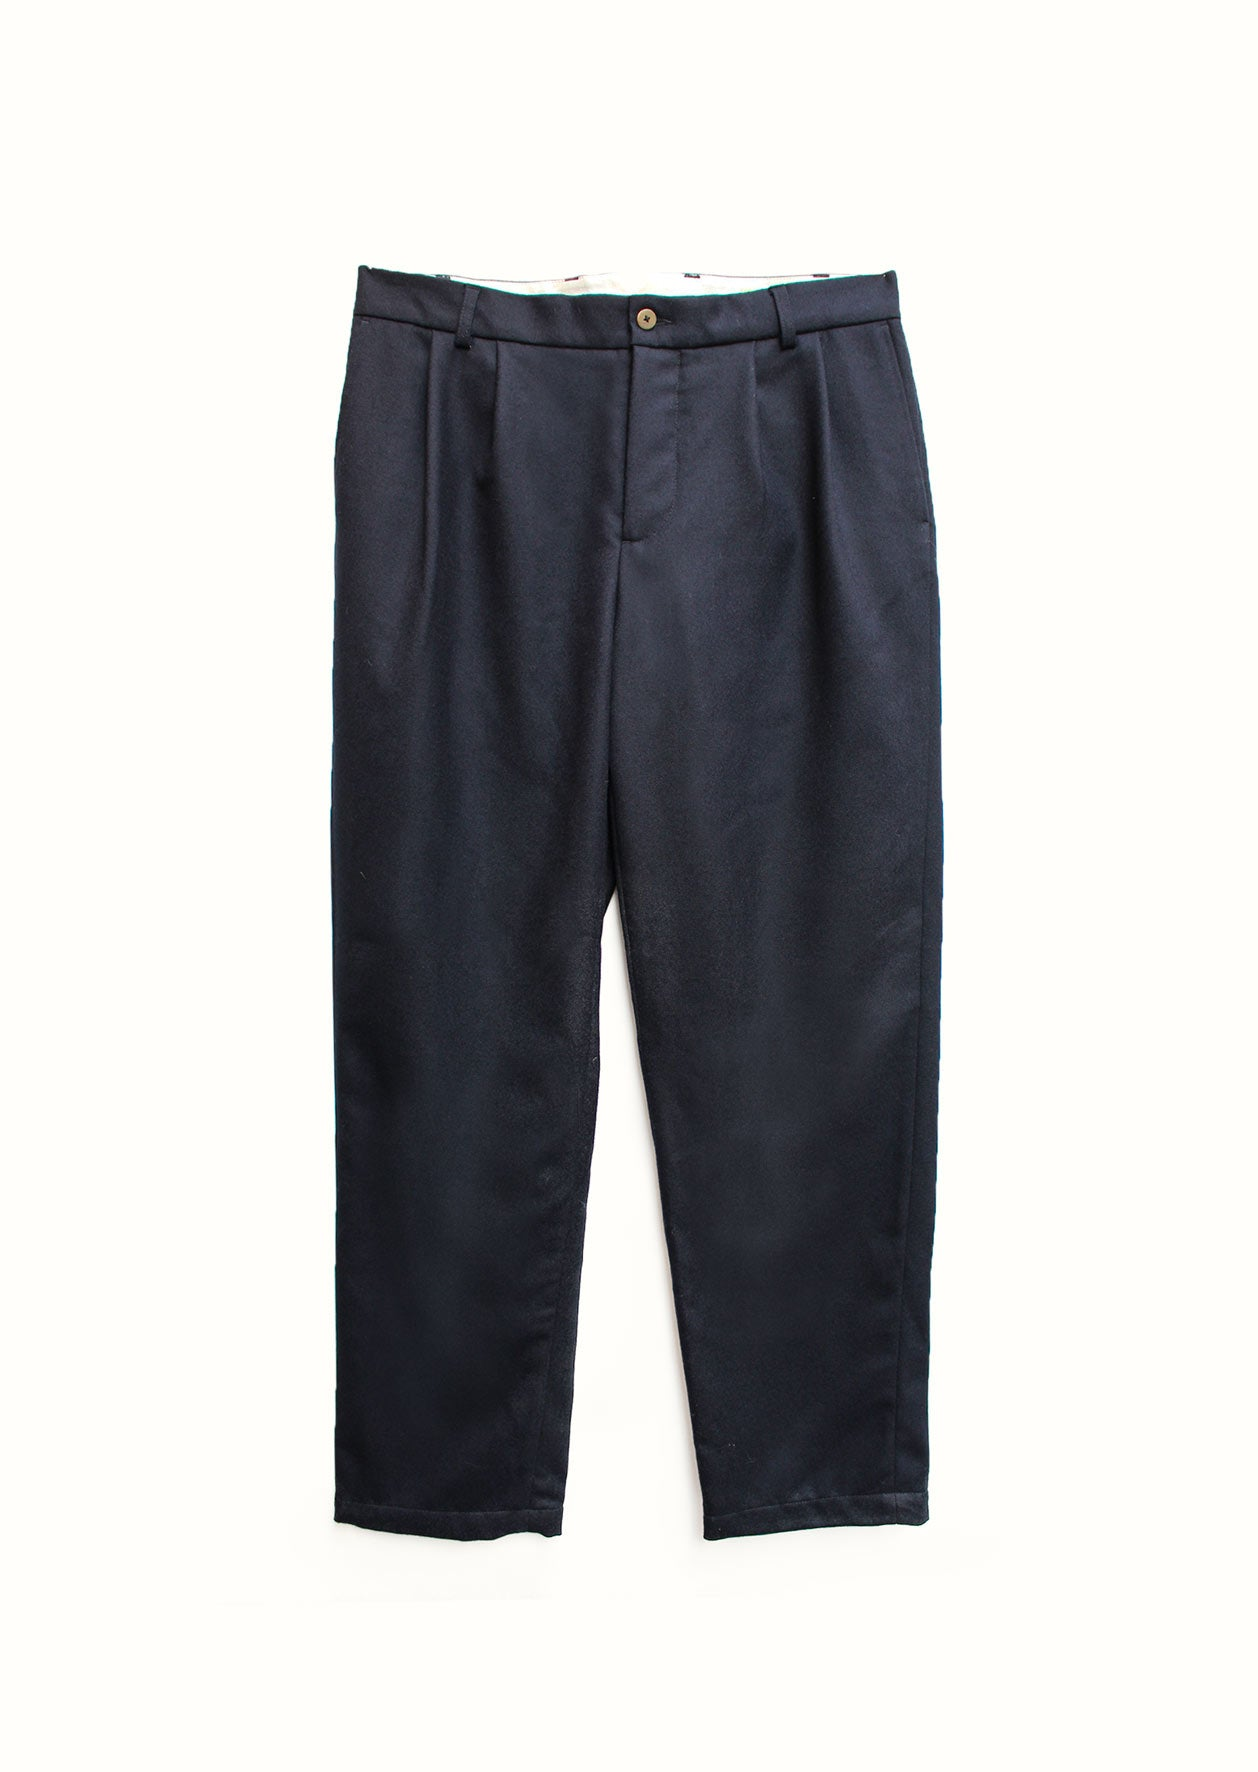 Two pleat large trousers - Japanese wool twill - Navy